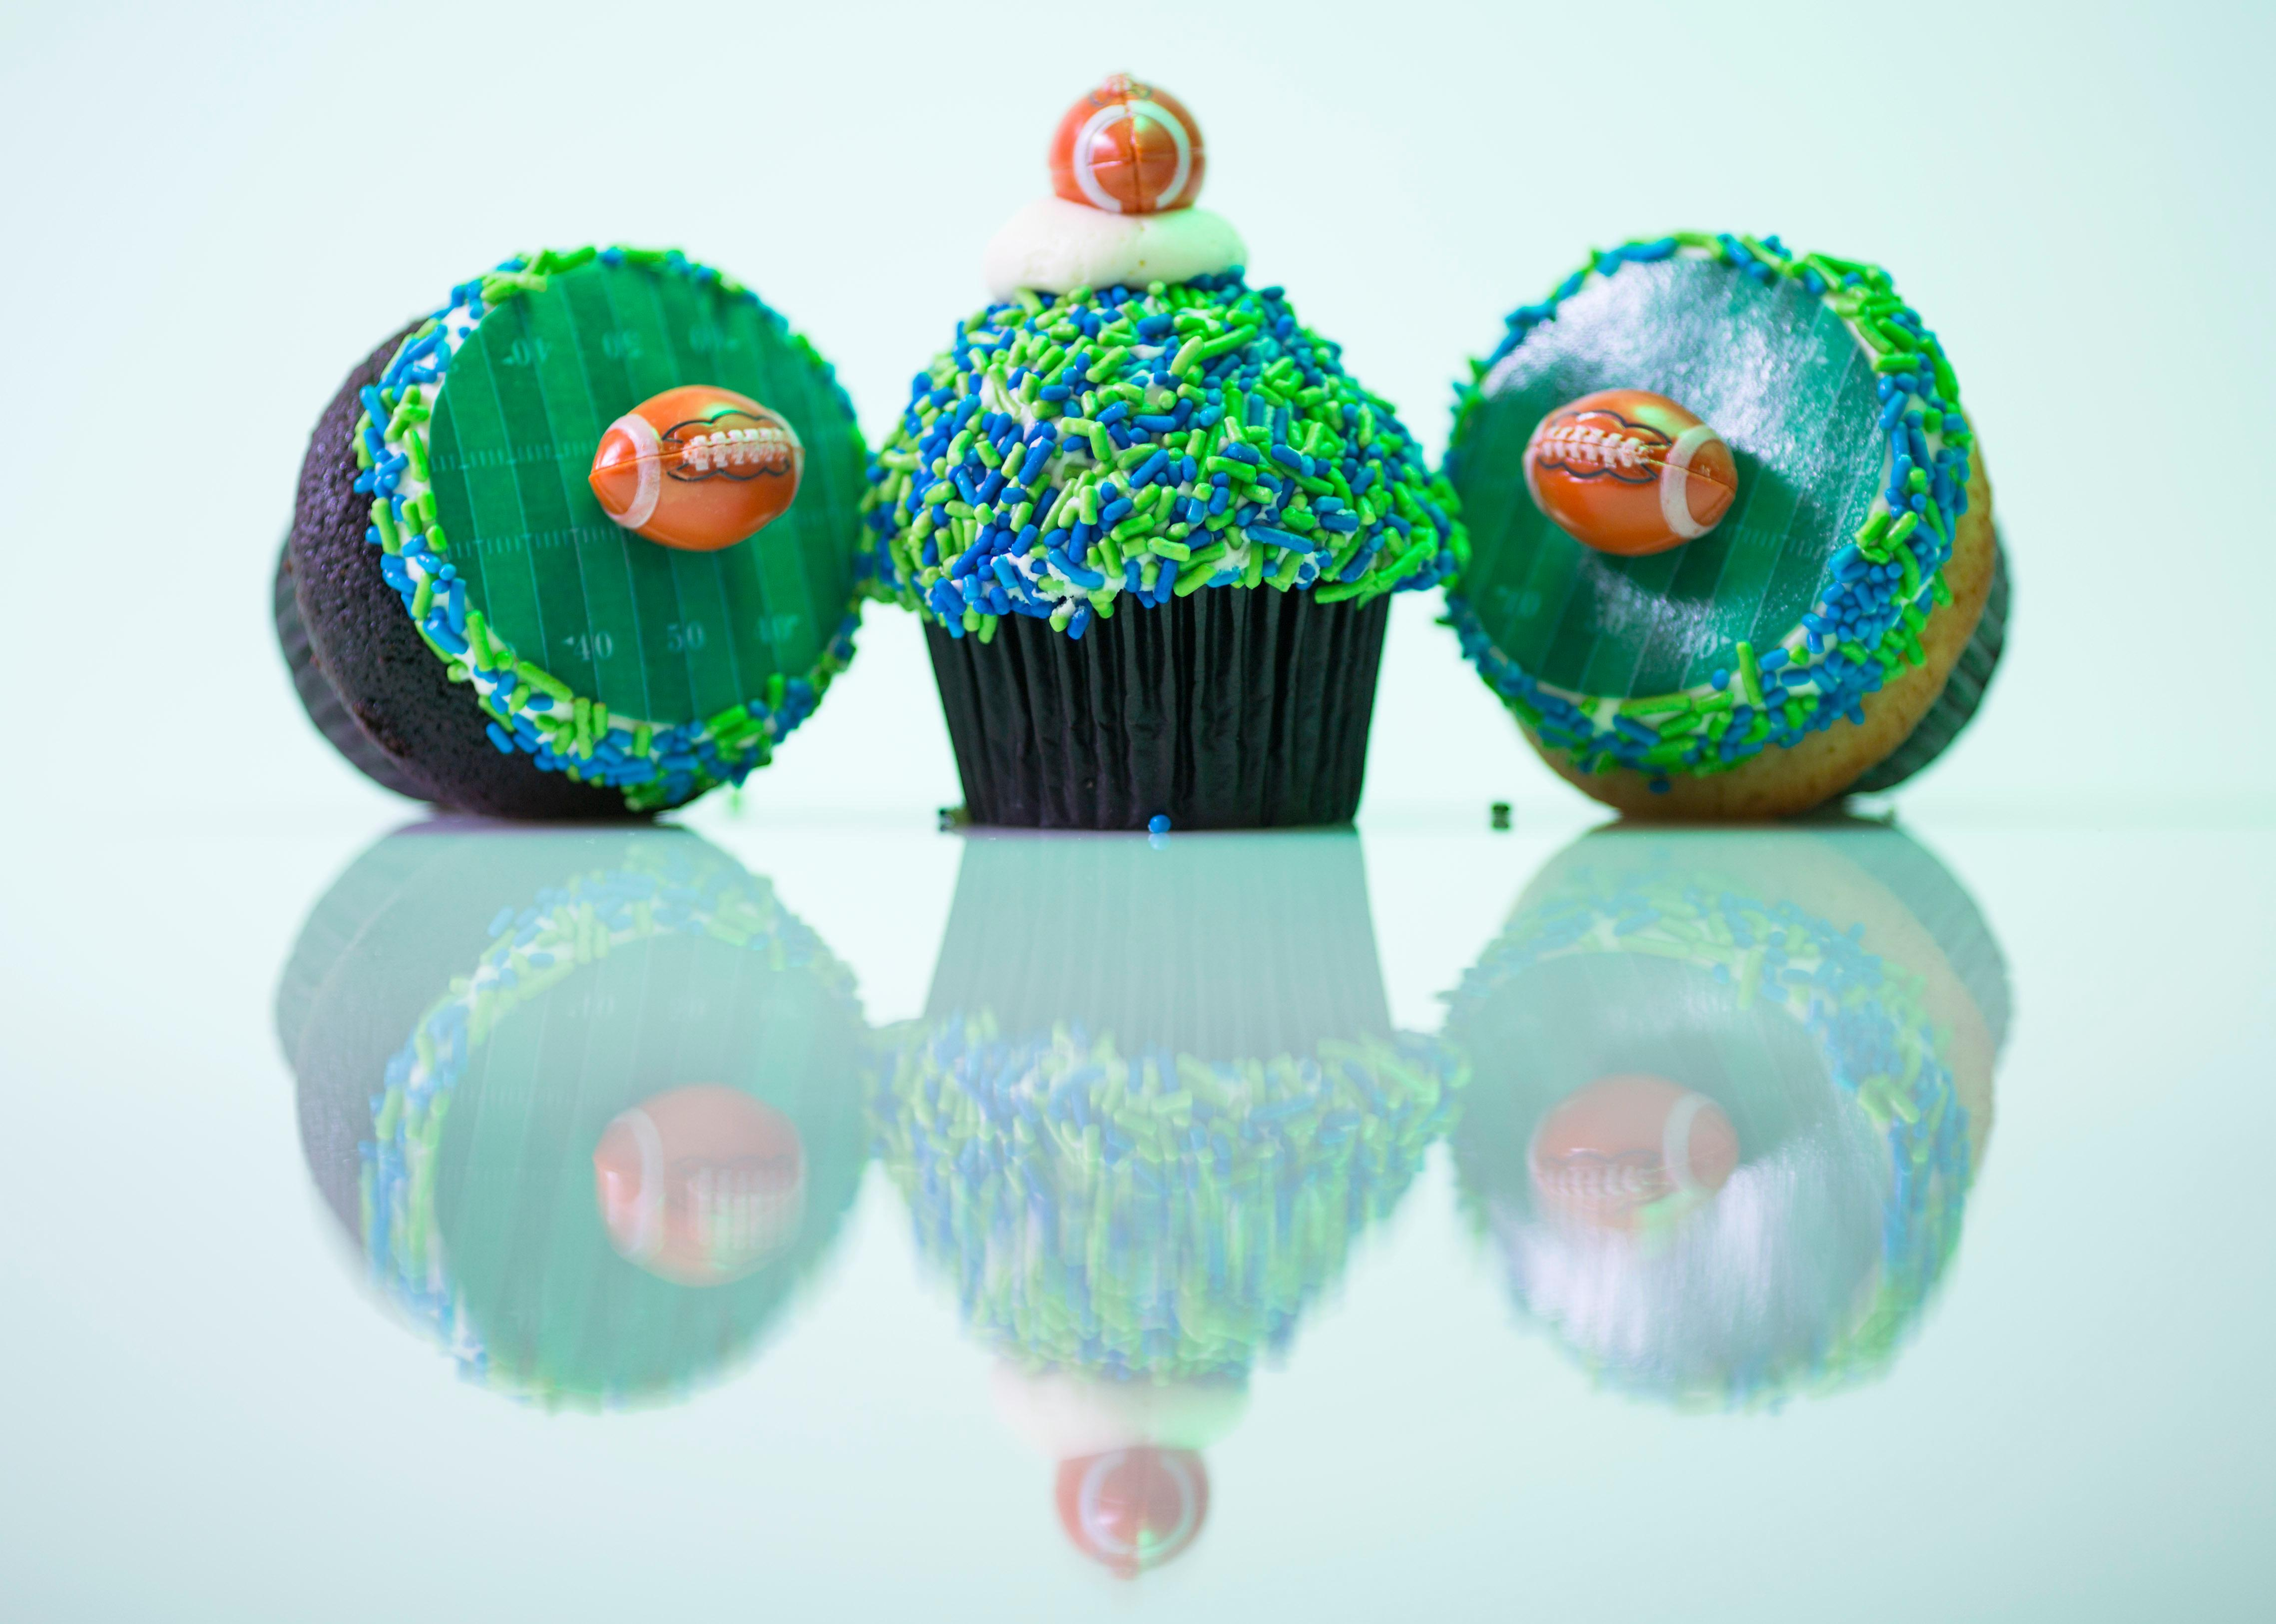 Another one of our favorite cupcake makers is Trophy Cupcakes - make sure to check out their Game Day Dozen and 12th Fan Dozen. (Sy Bean / Seattle Refined)